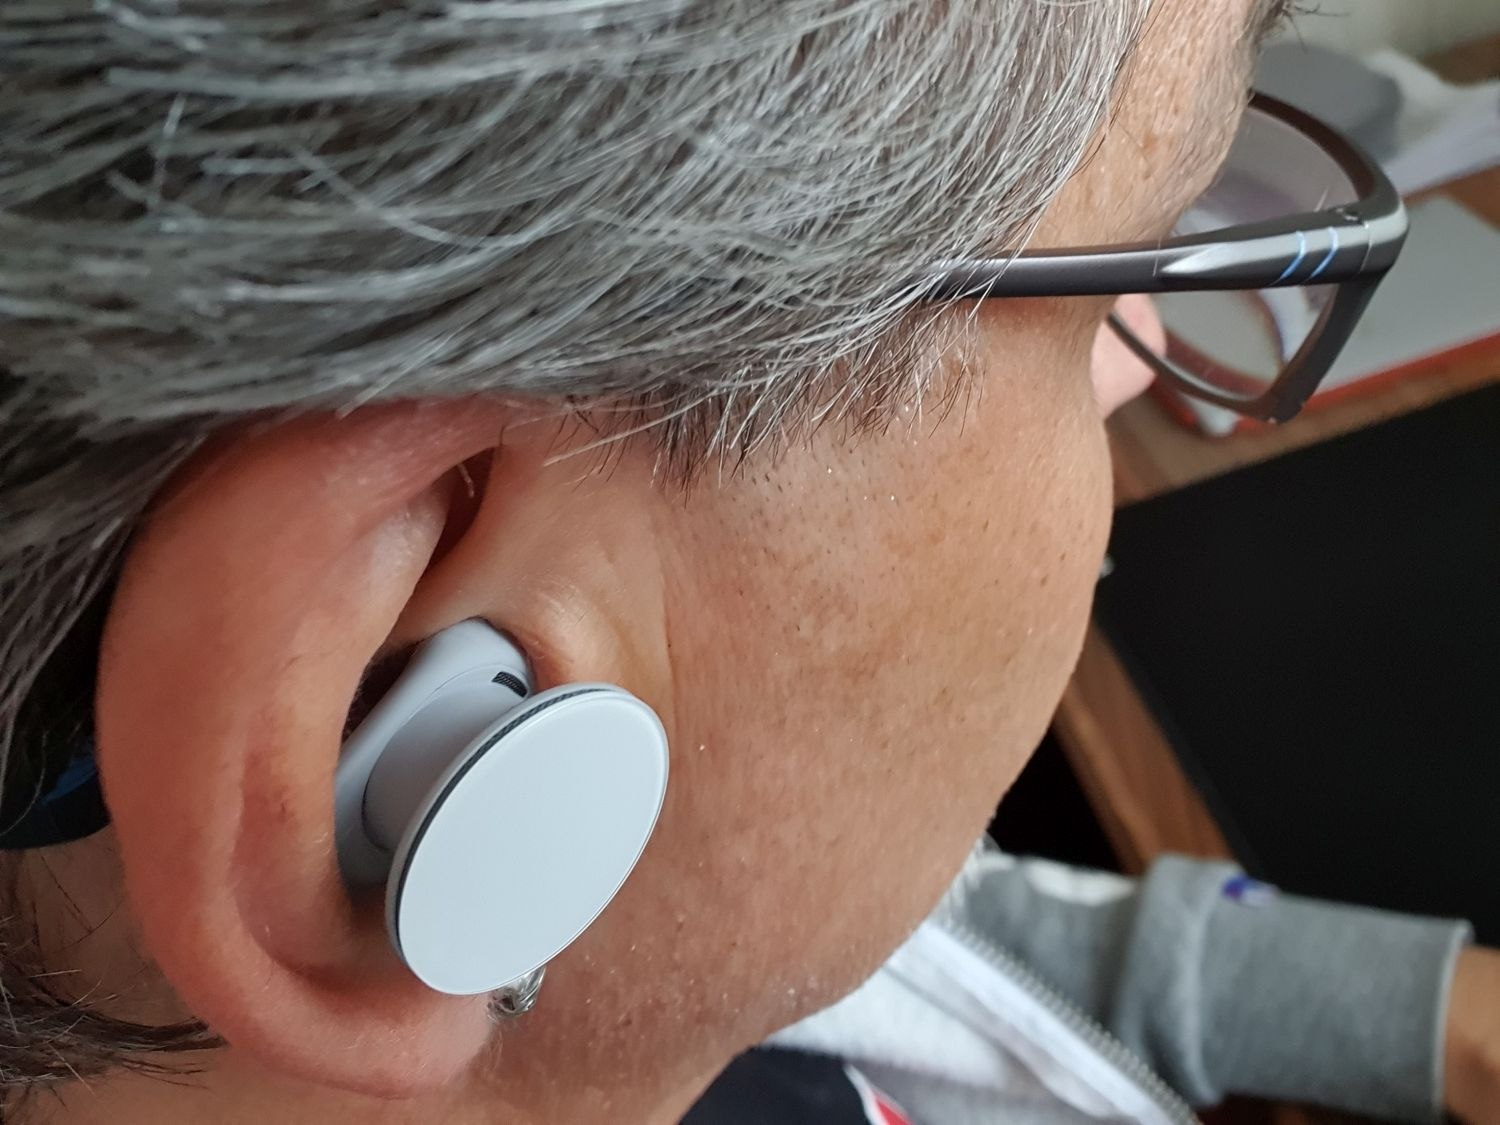 Surface earbuds in use